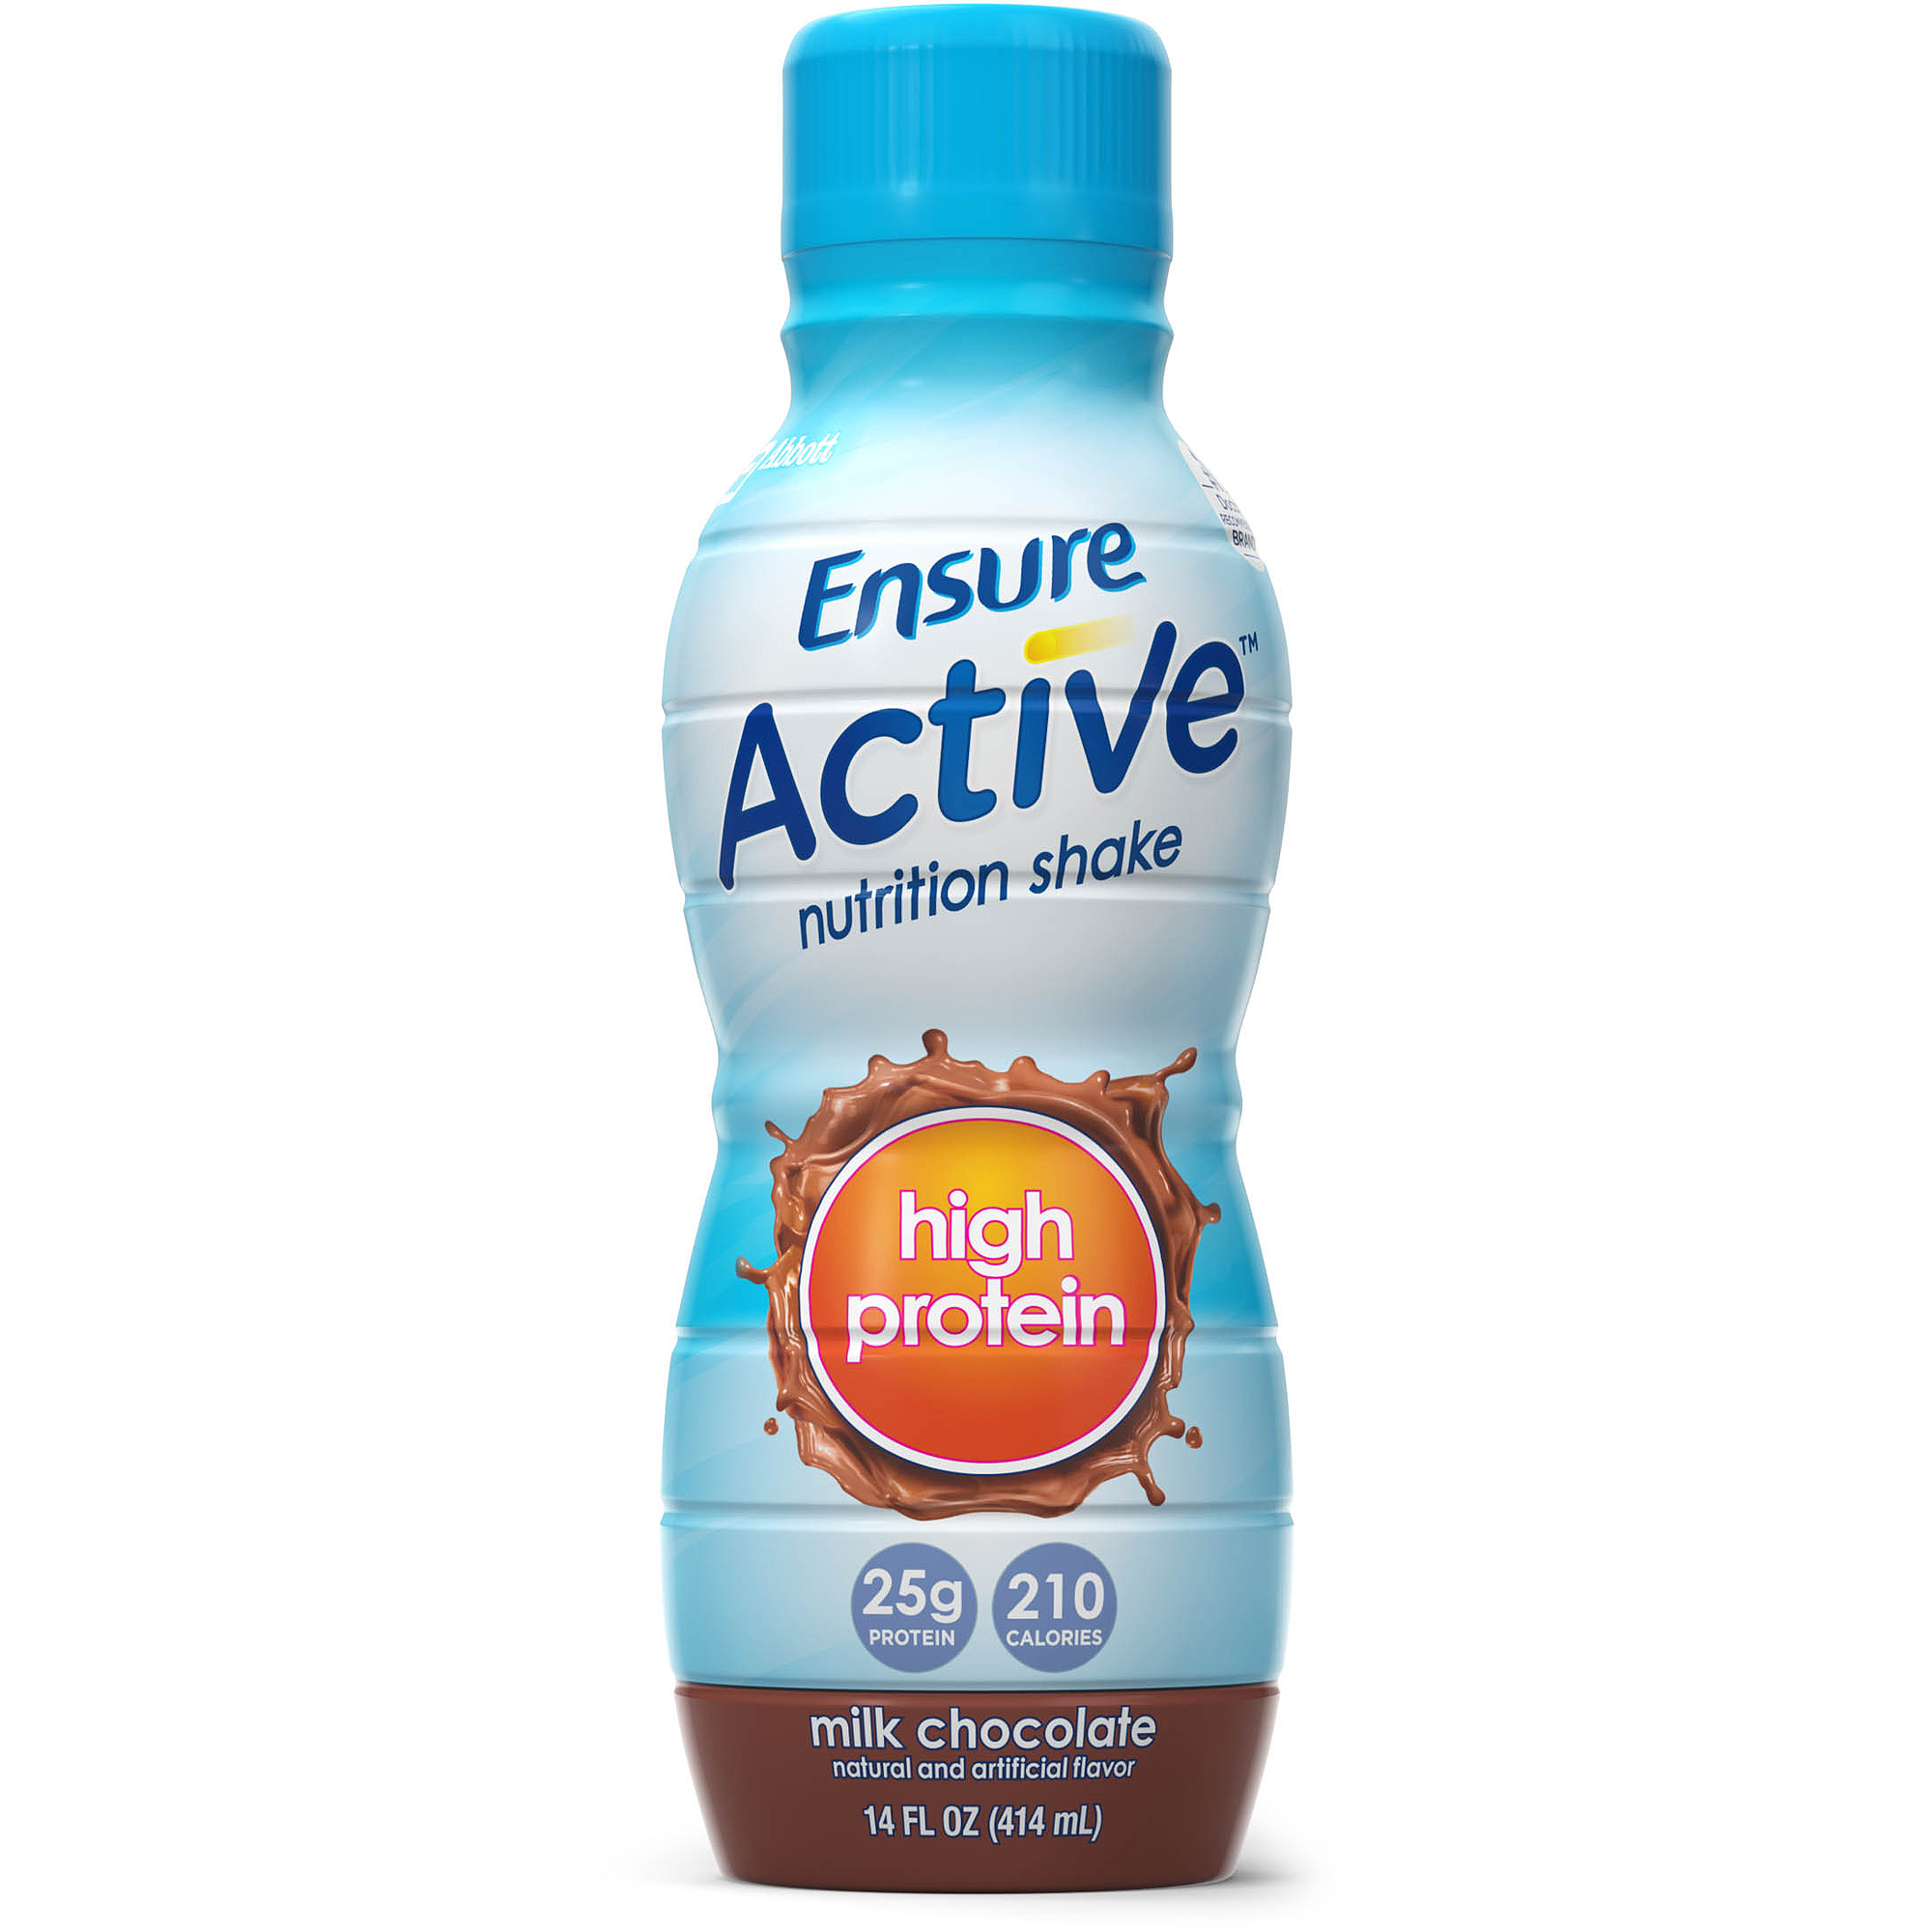 Ensure Active High Protein Shake, Chocolate,  14 fl oz bottle, 4 count